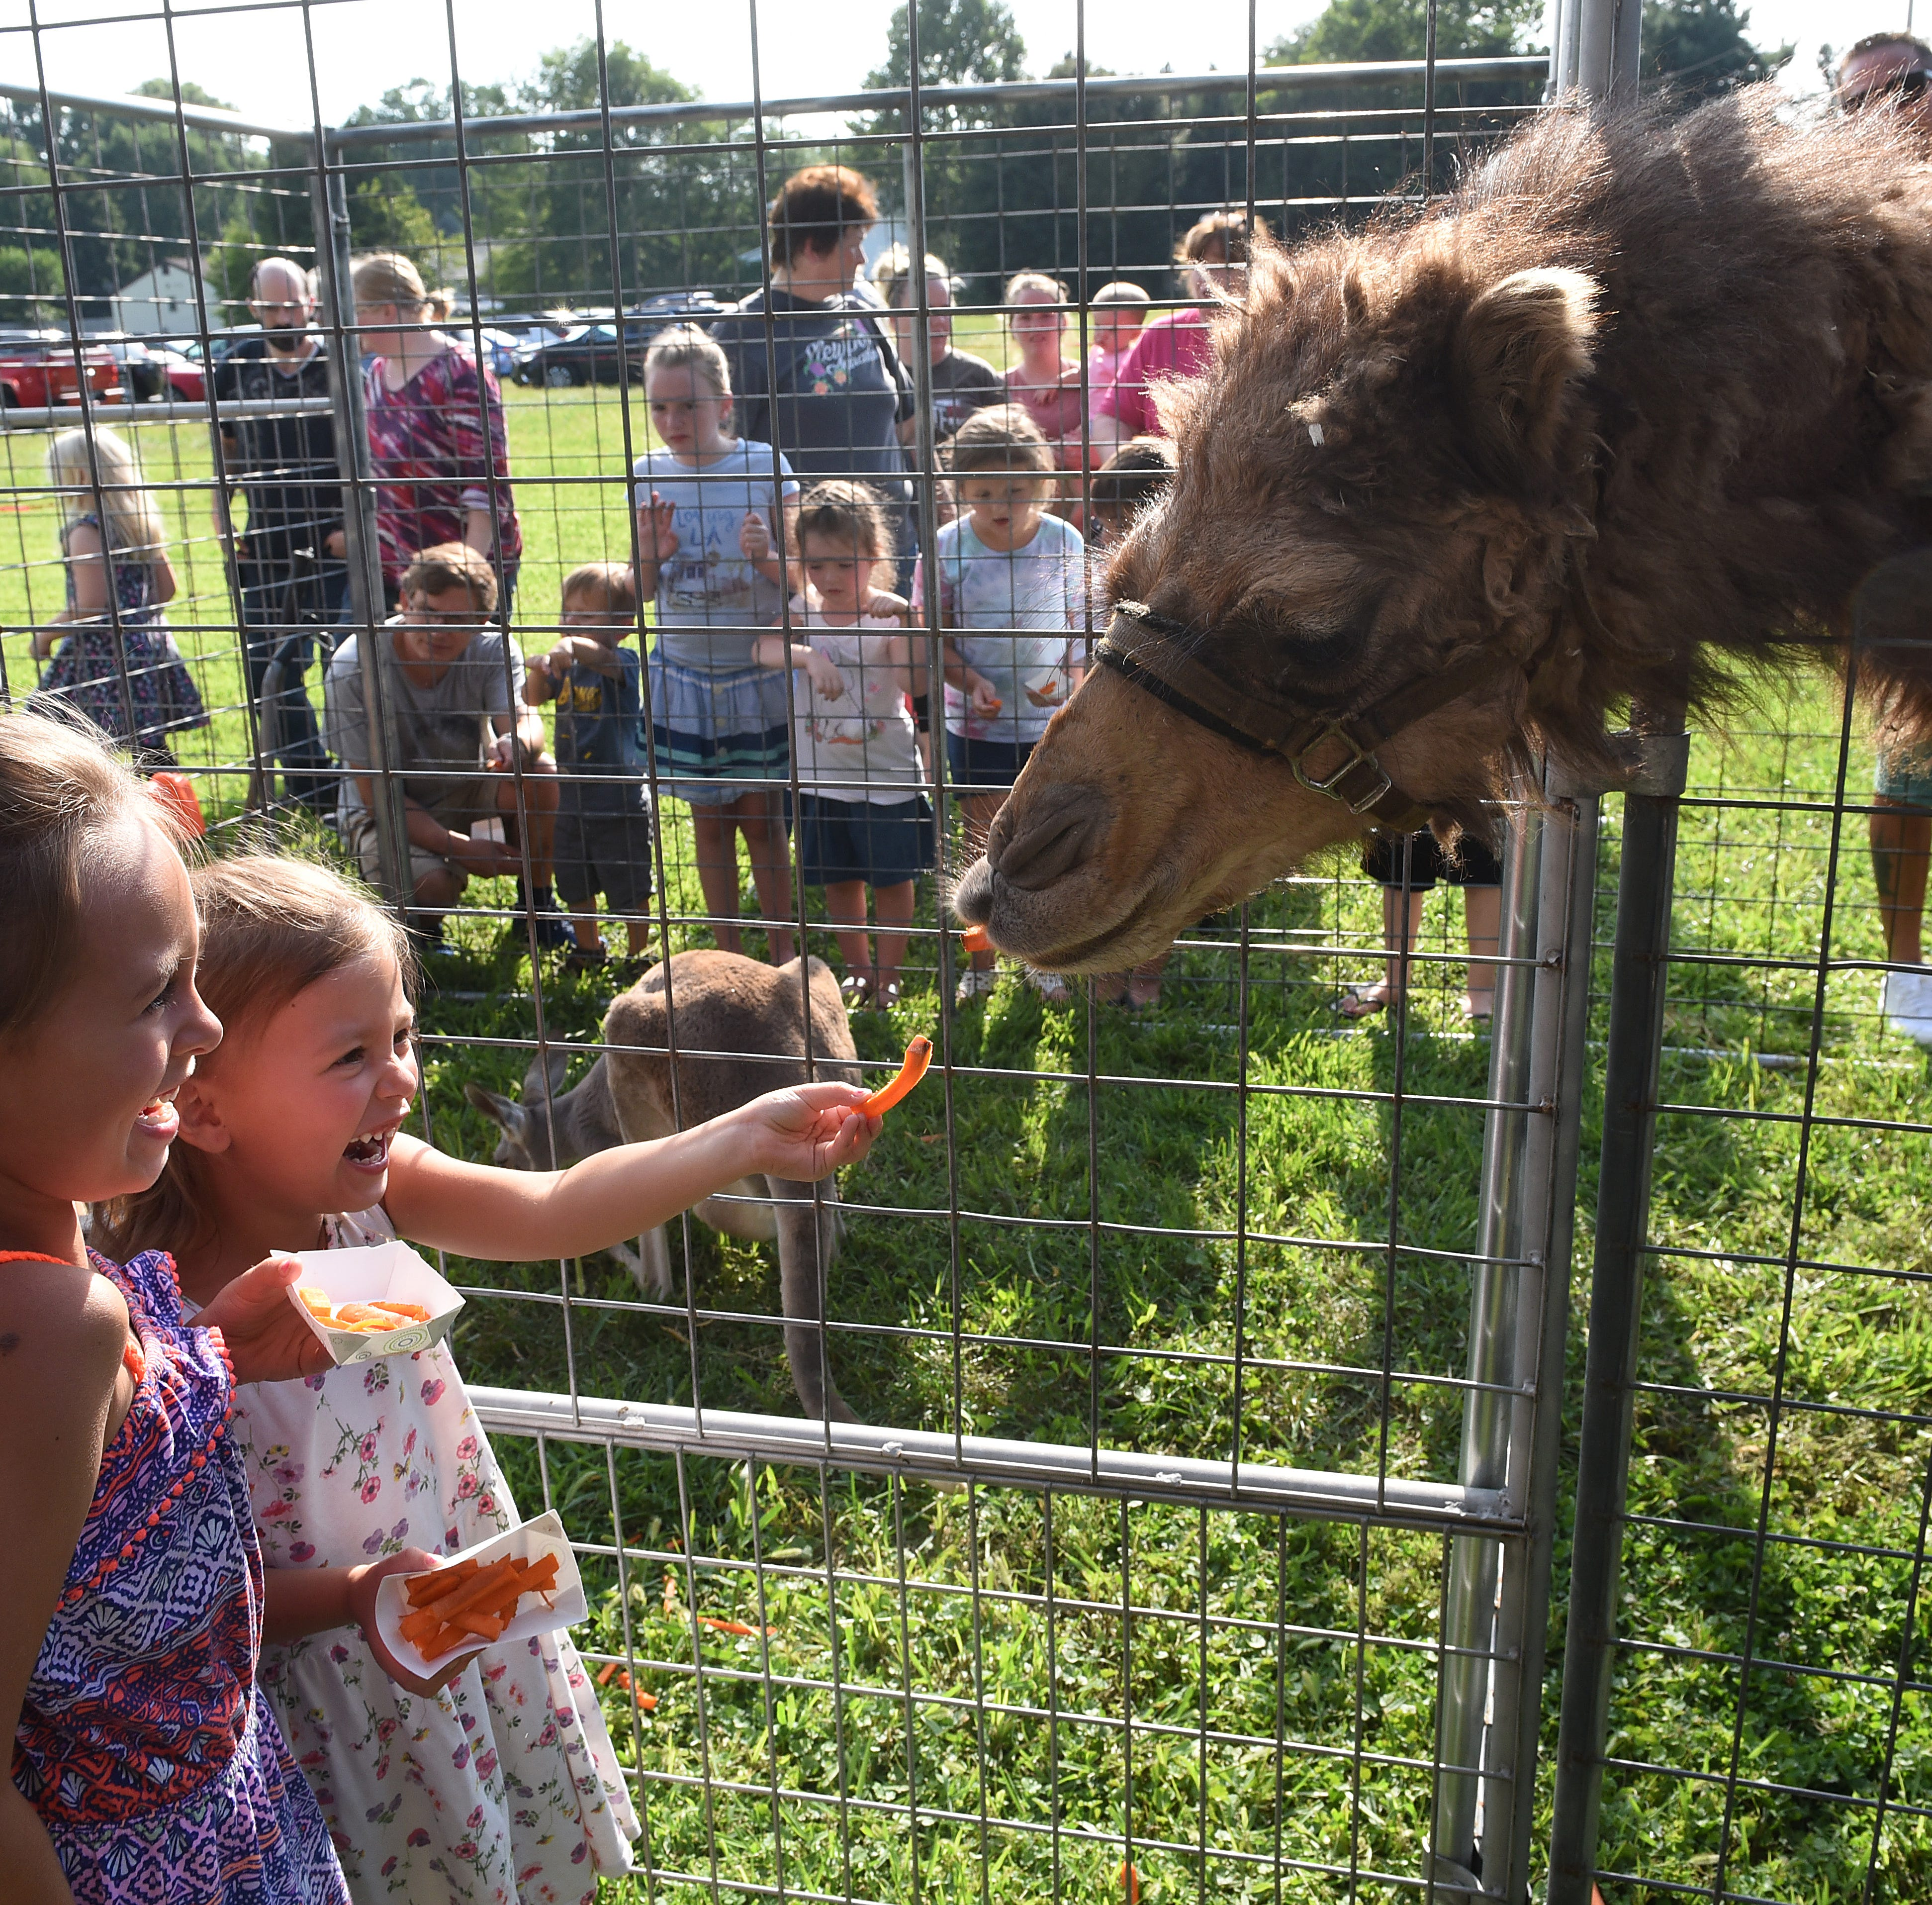 Sisters Ali, 6, and Sera Curtis, 4, tempt a camel with carrot sticks during a visit of the Jungle Island Zoo out of Delphos visited the Pataskala Public Library on Thursday, Aug. 9, 2018.